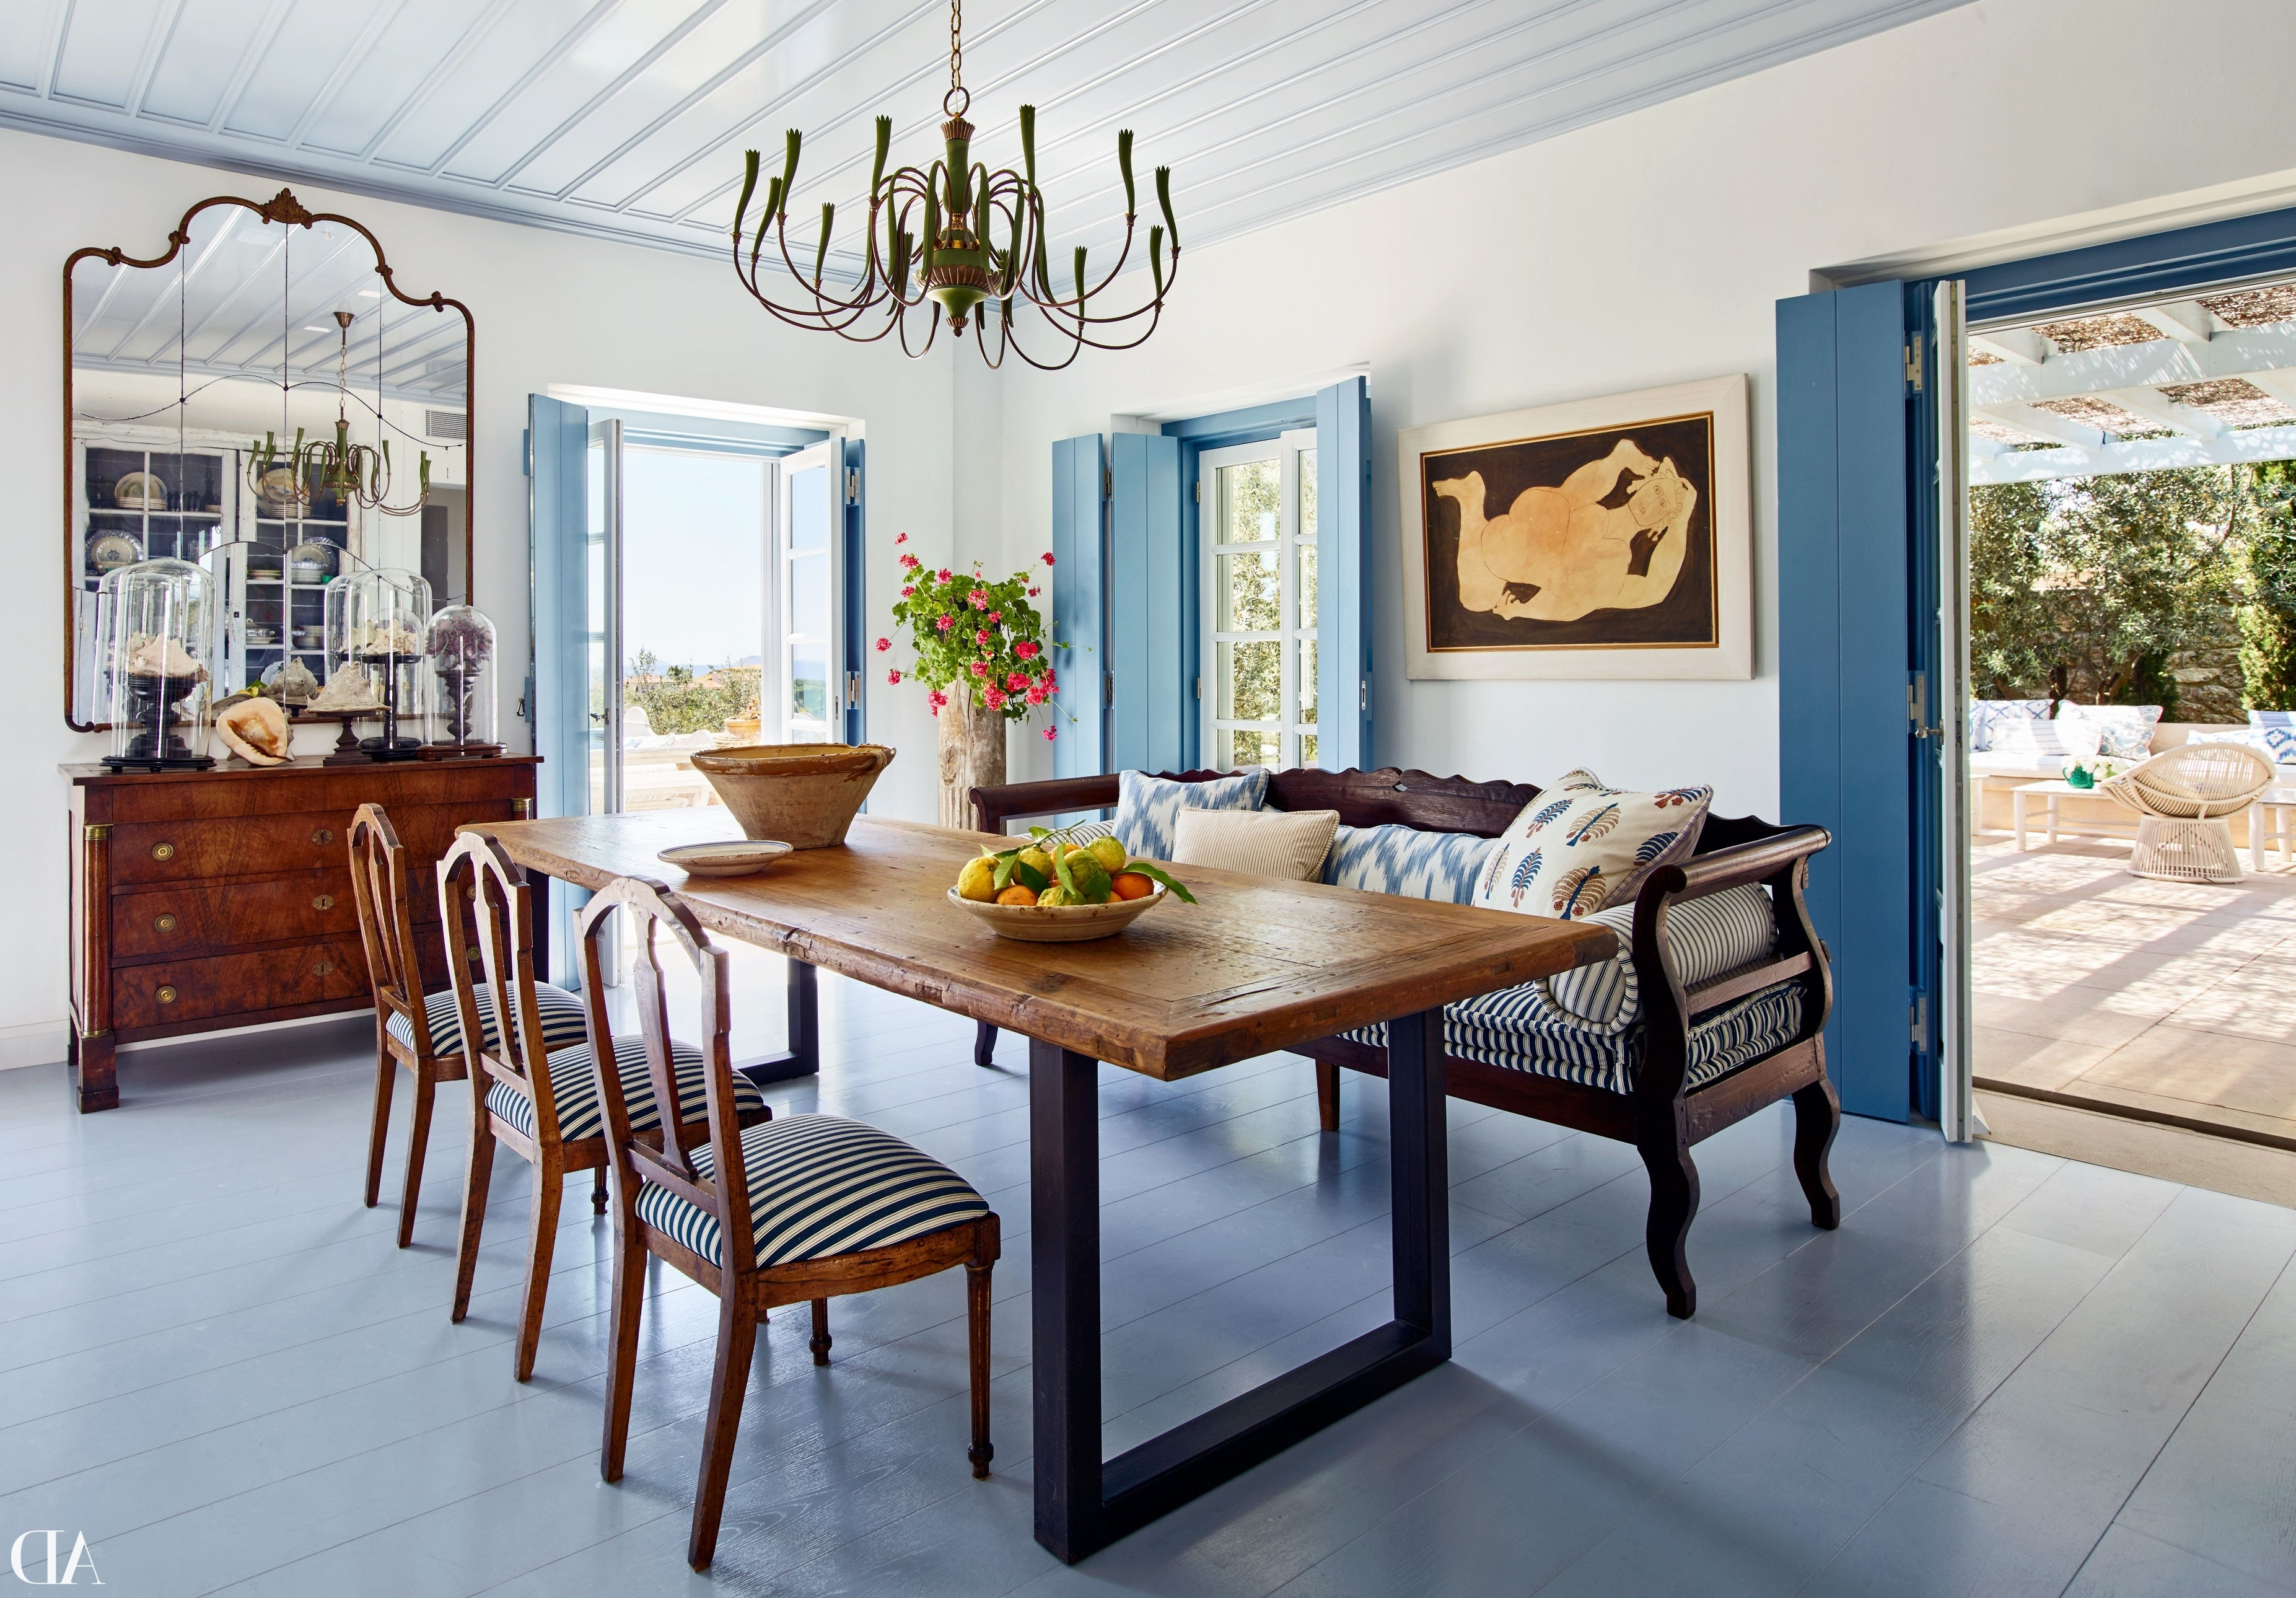 Dining Room Tables In Well Known Tips To Mix And Match Dining Room Chairs Successfully (View 7 of 25)